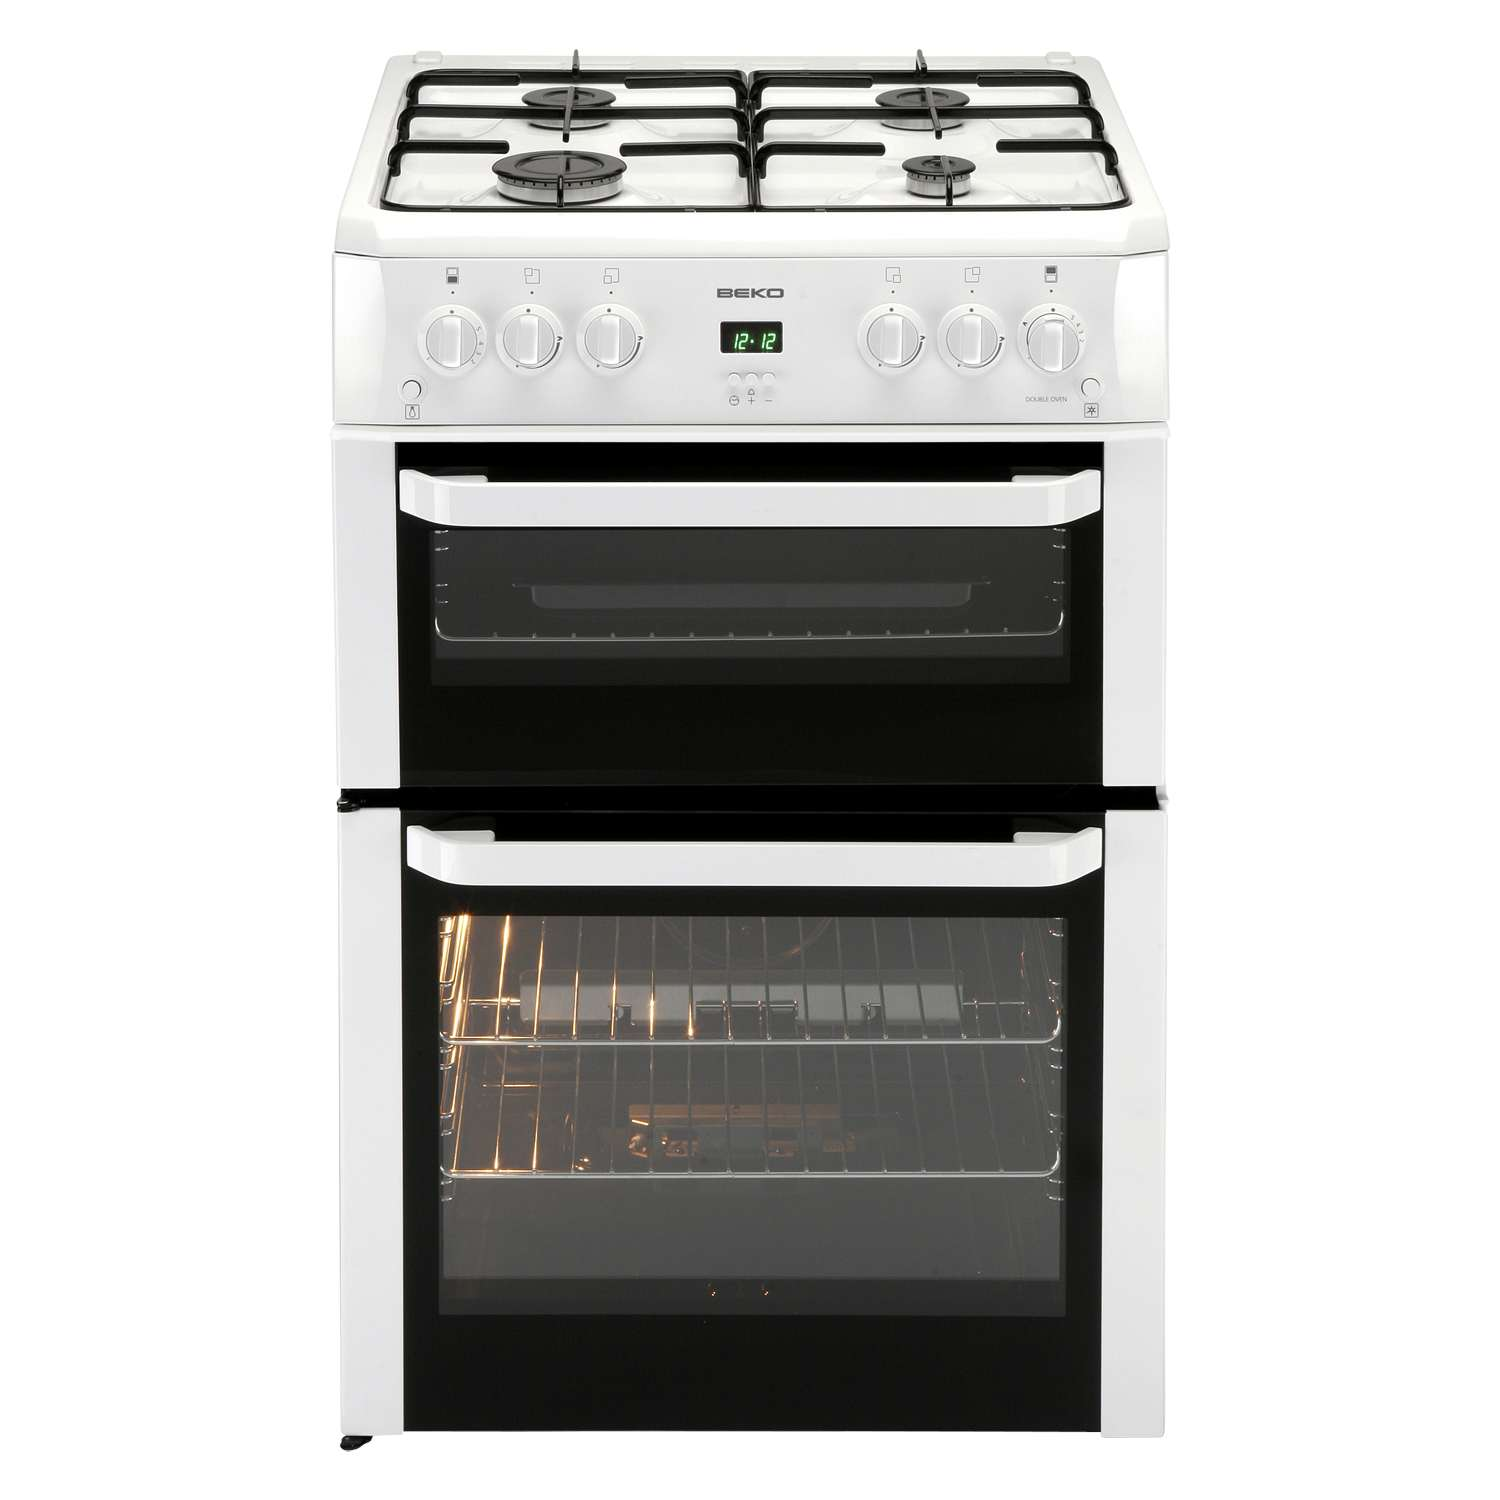 beko bdvg694wp 60cm freestanding double oven gas cooker. Black Bedroom Furniture Sets. Home Design Ideas